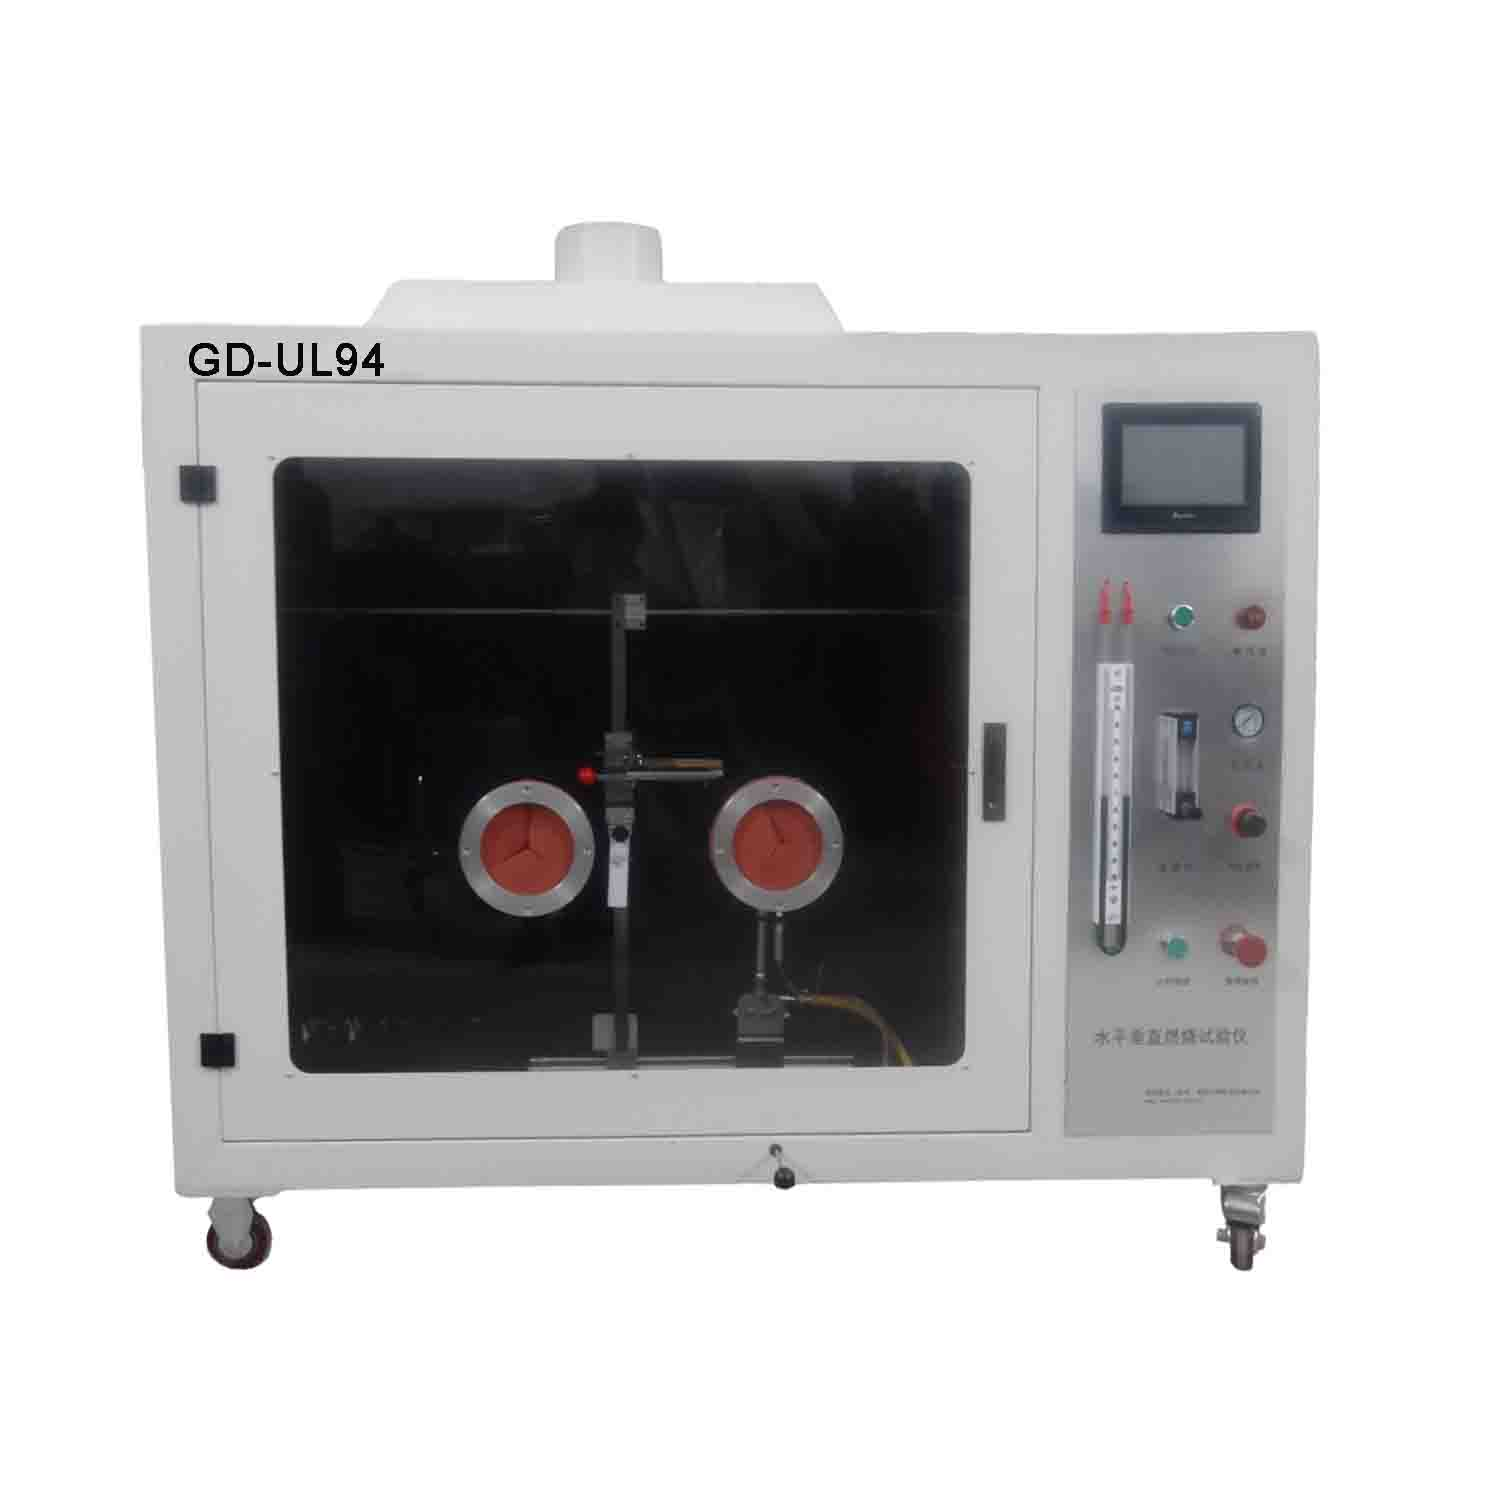 UL94 Horizontal /Vertical burning testing instrument